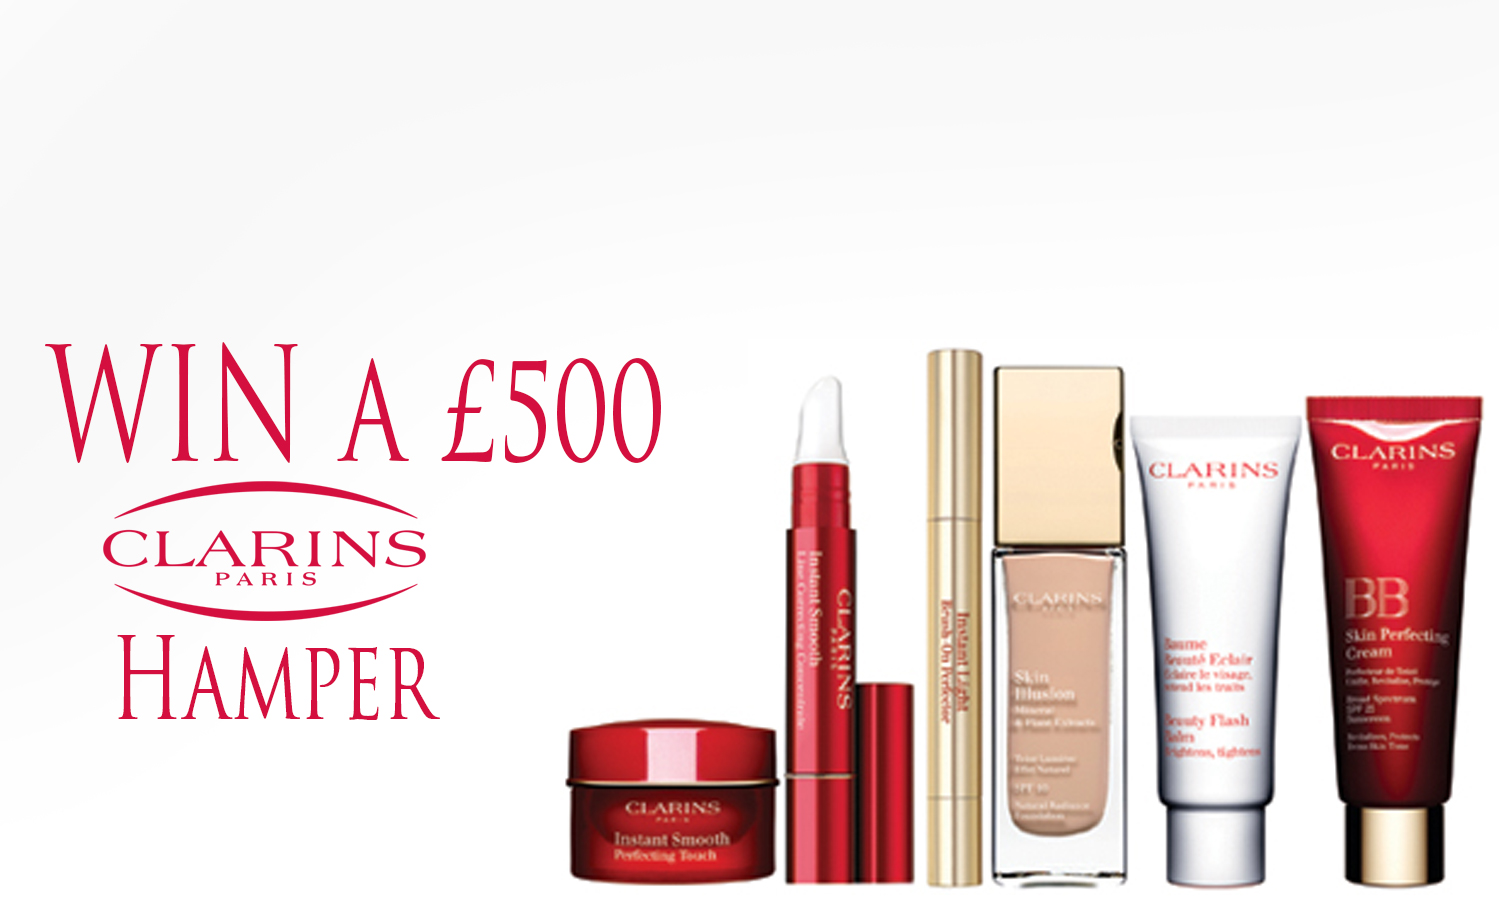 Win a £500 Clarin's Hamper | Free Competitions | WINNERSVILLE.co.uk